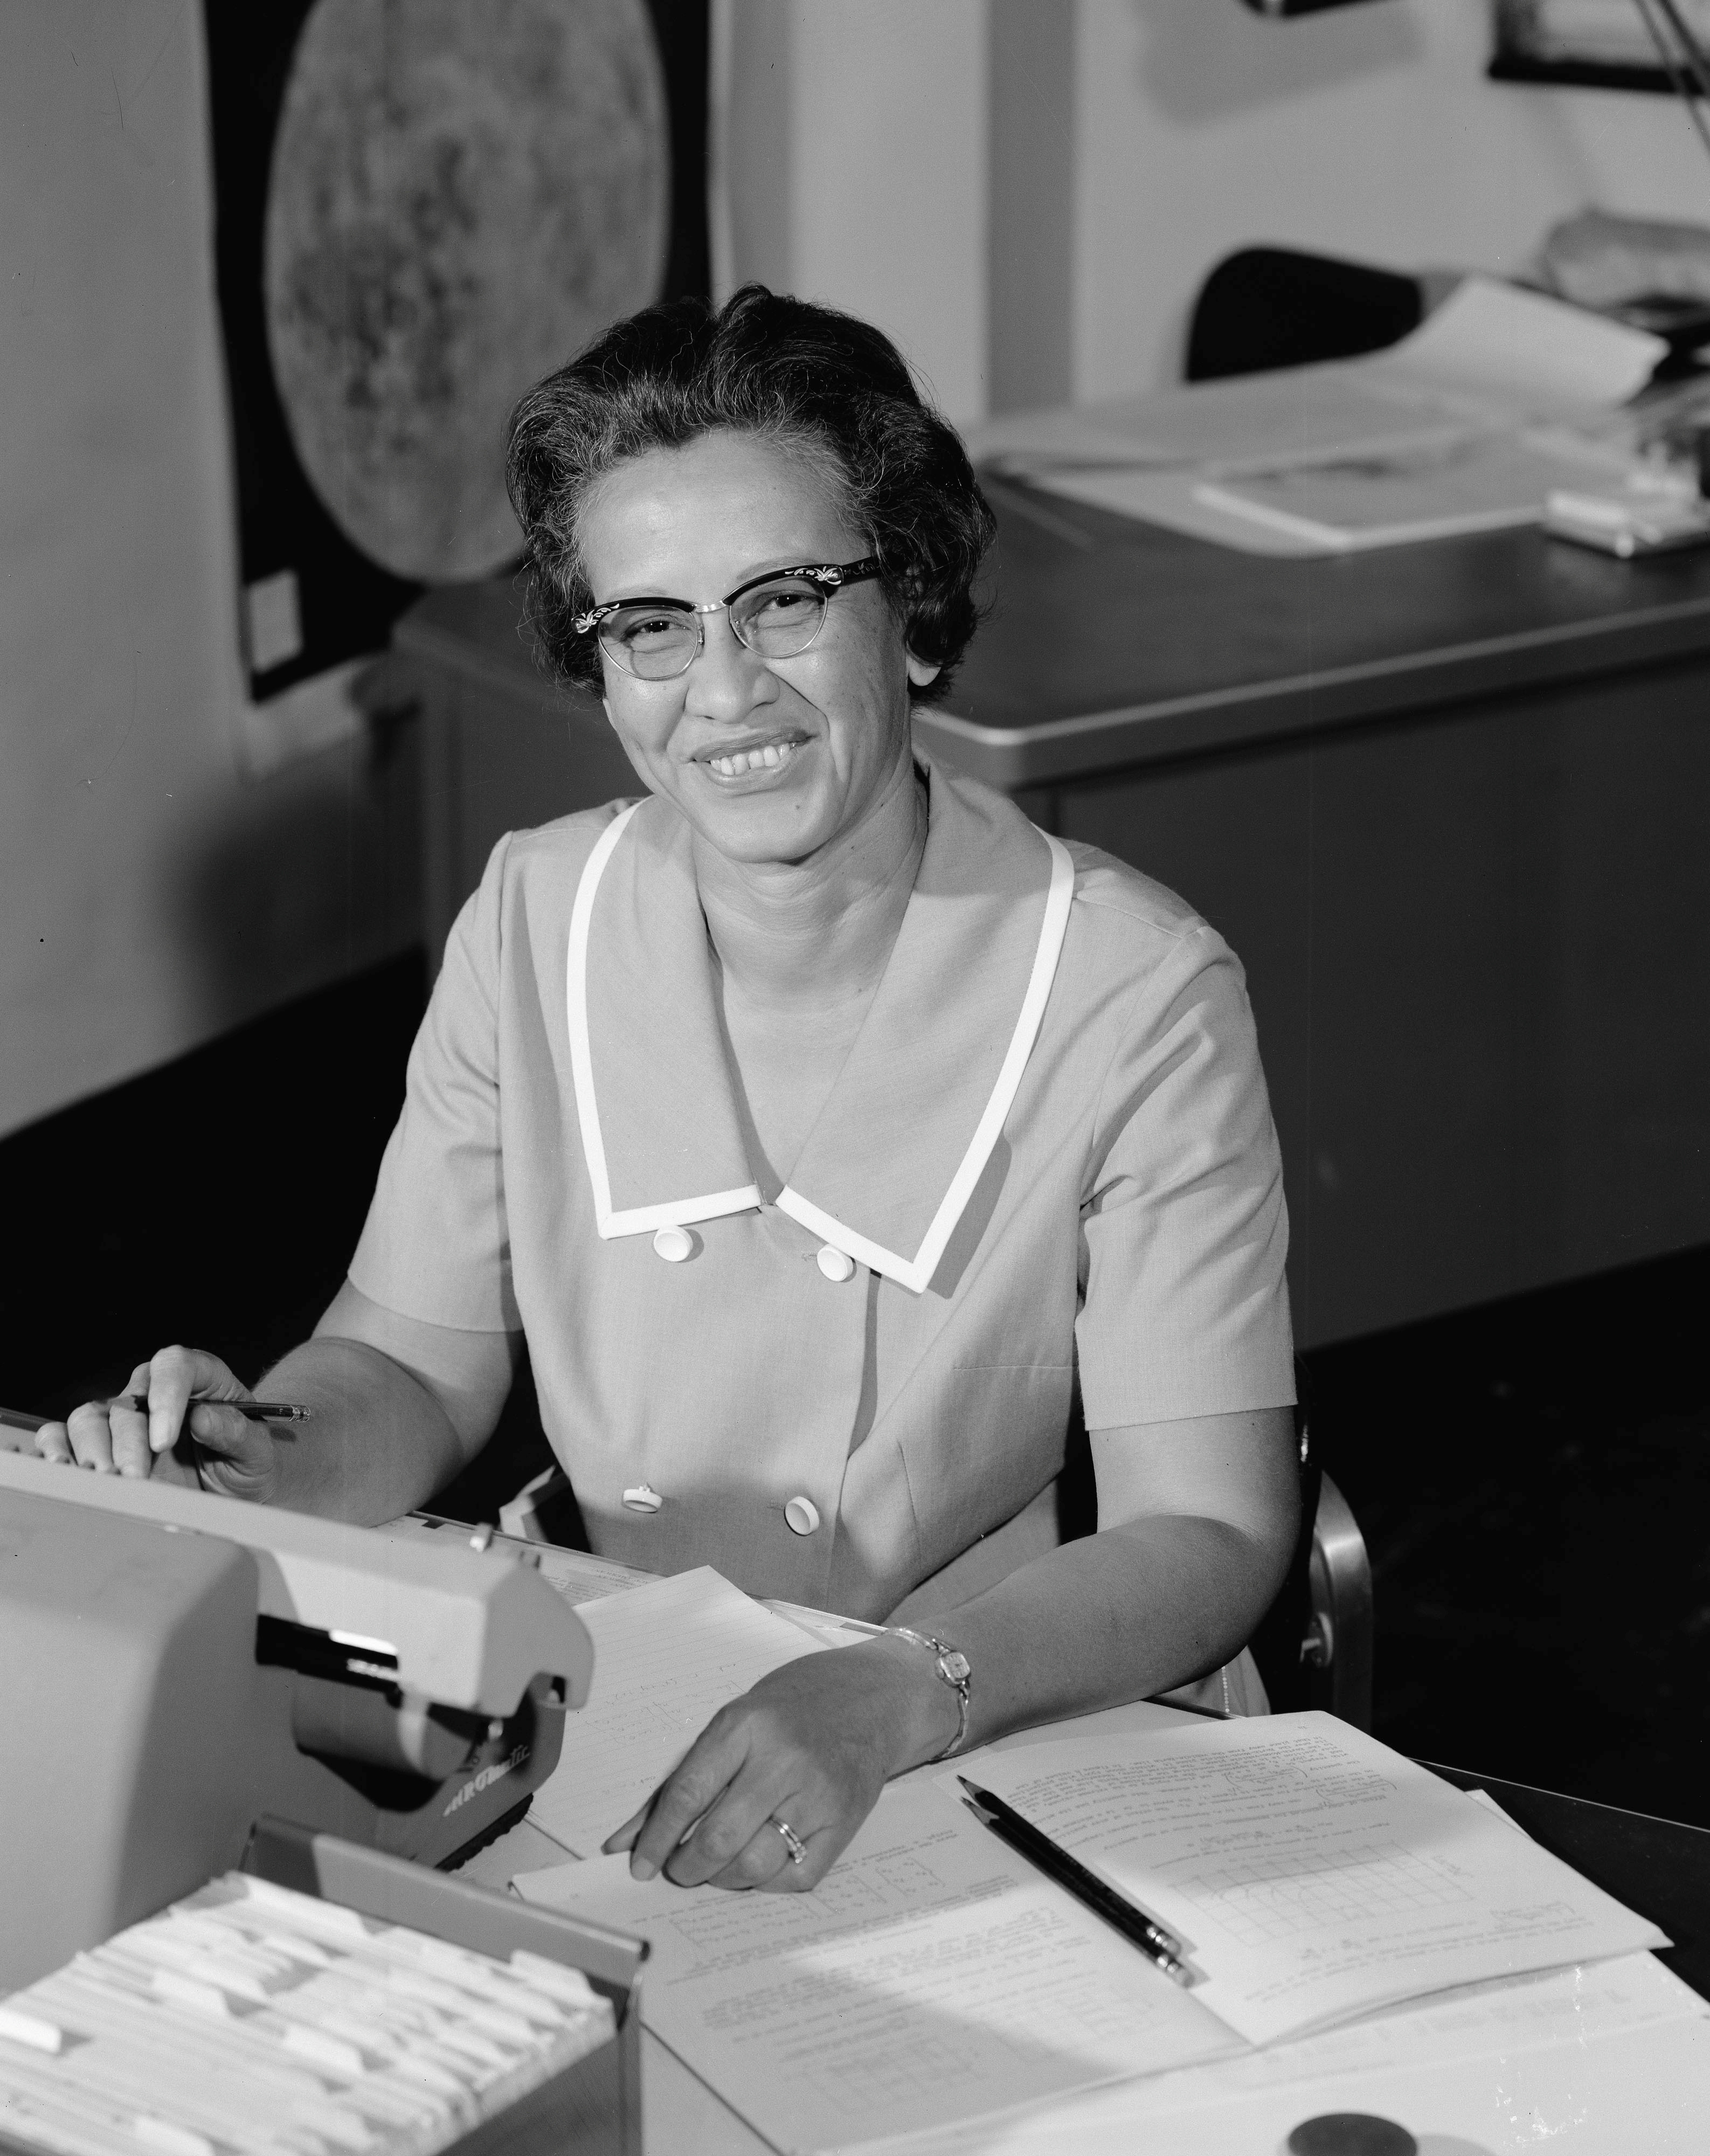 NASA research mathematician Katherine Johnson is photographed at her desk at Langley Research Center in Hampton, Virginia, U.S., in this image from 1966. NASA/Handout via REUTERS  ATTENTION EDITORS - THIS IMAGE HAS BEEN SUPPLIED BY A THIRD PARTY. - RC1A0538BB40